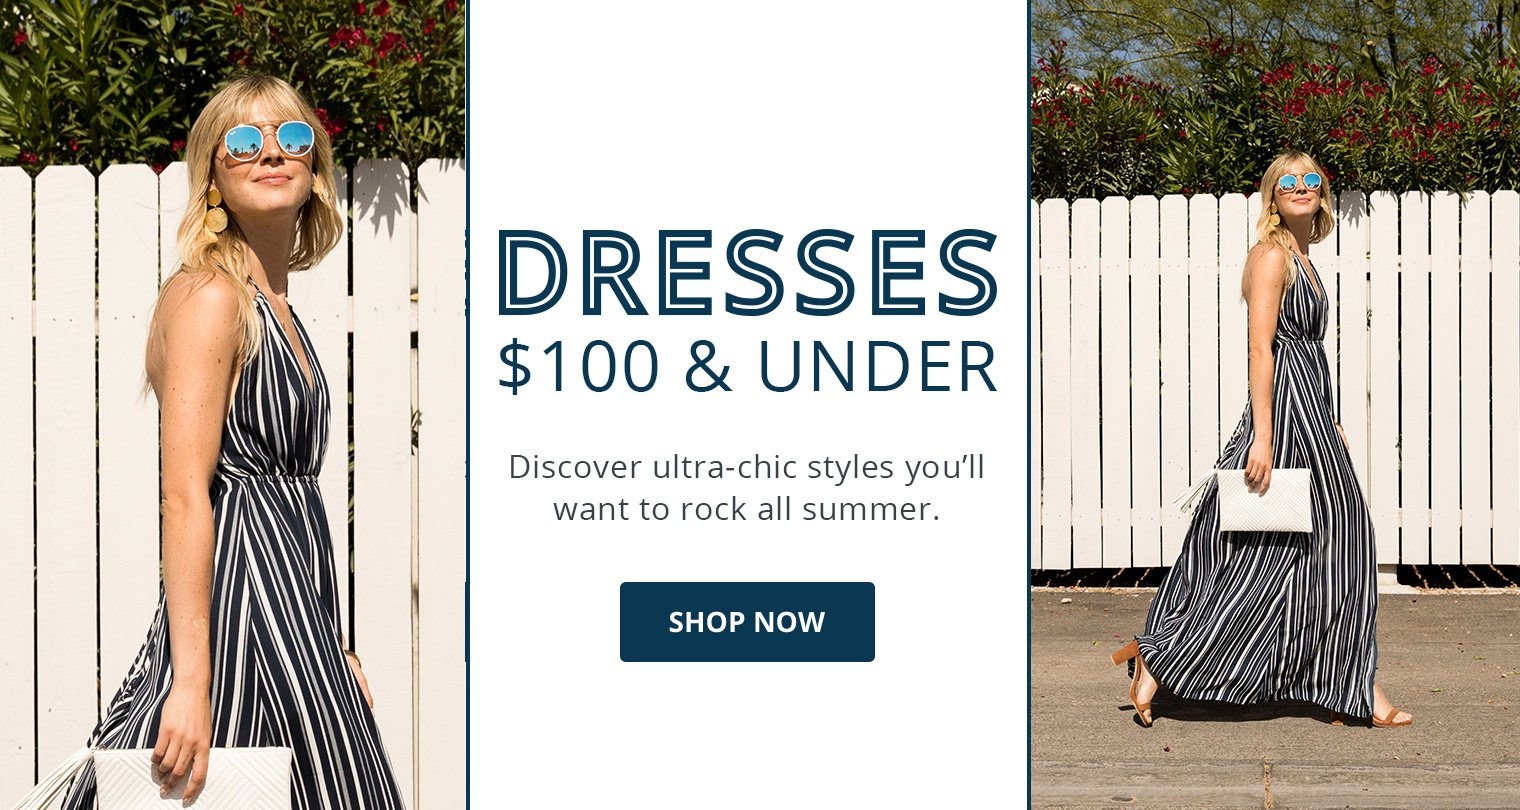 The dress images - Dresses 100 And Under Discover Ultra Chic Styles You Ll Want To Rock